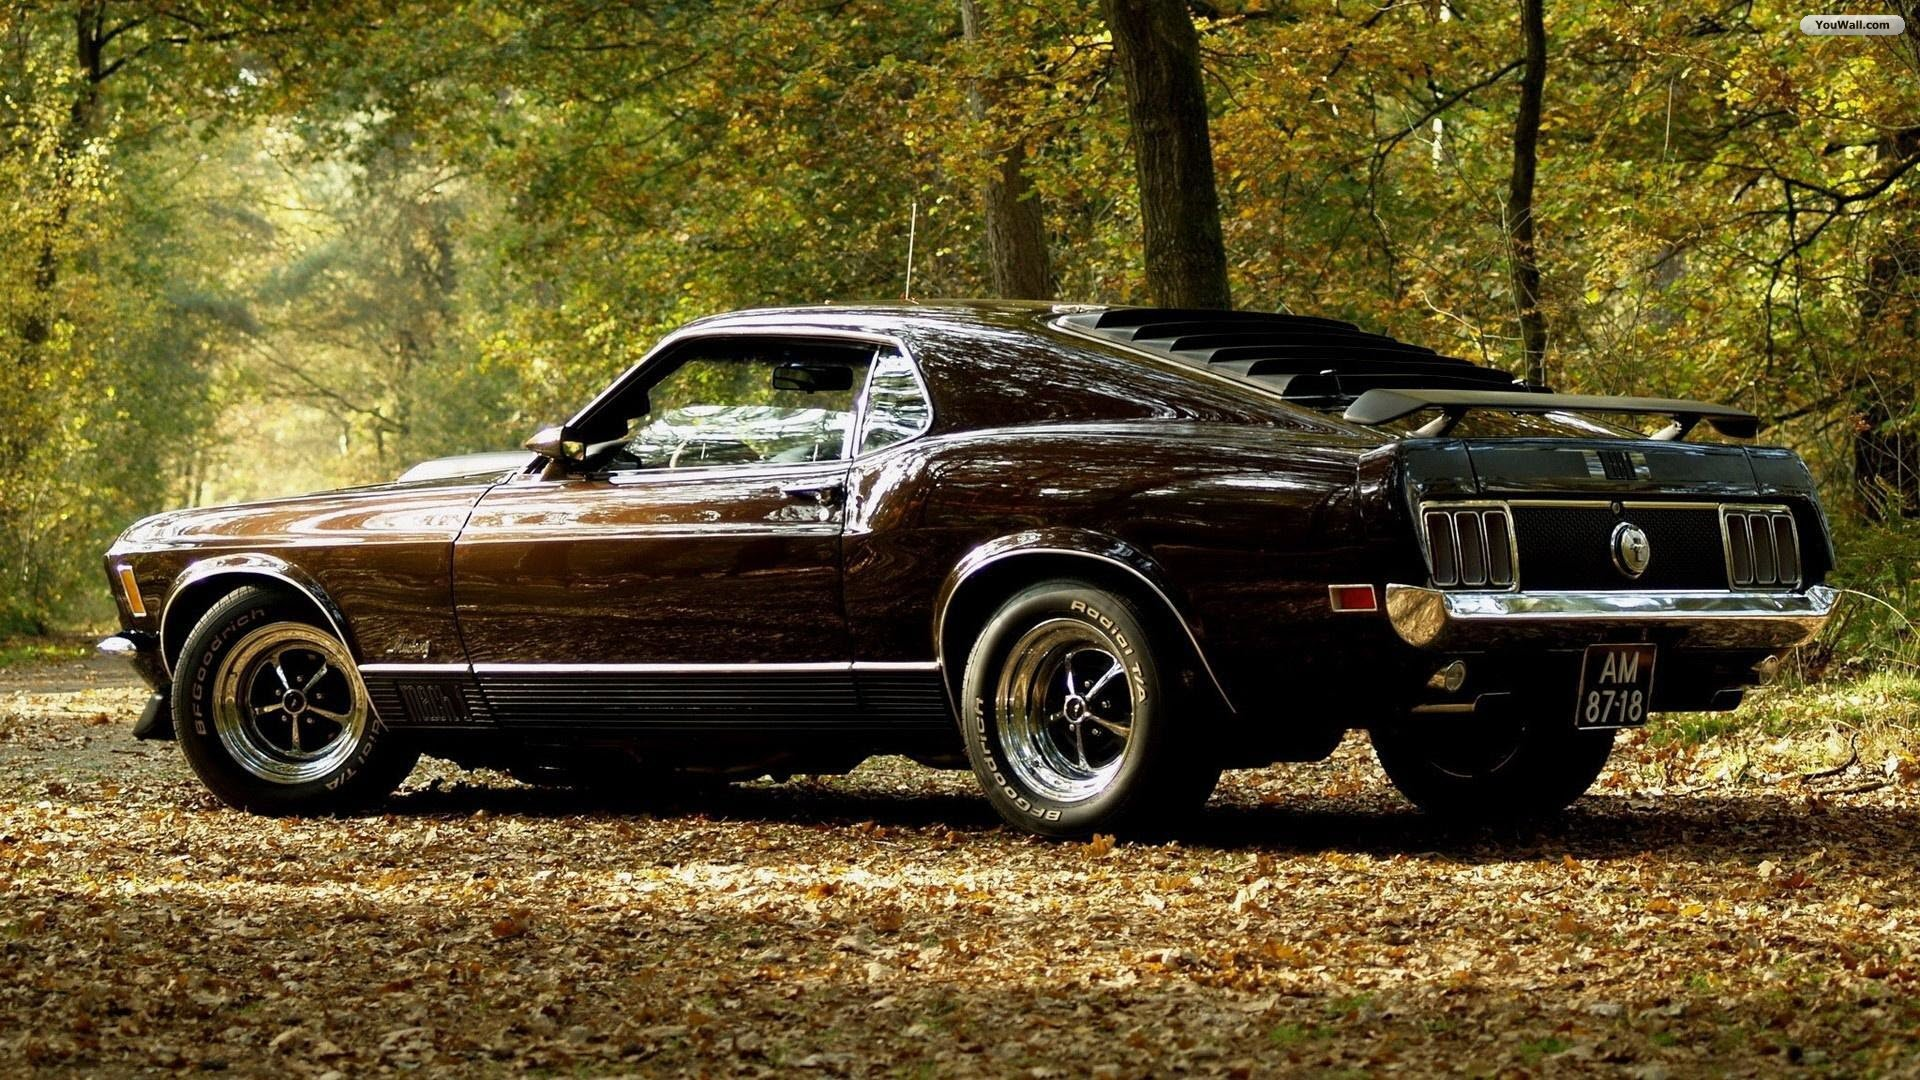 Muscle Car Screensavers And Wallpaper: Classic Car Wallpaper And Screensavers